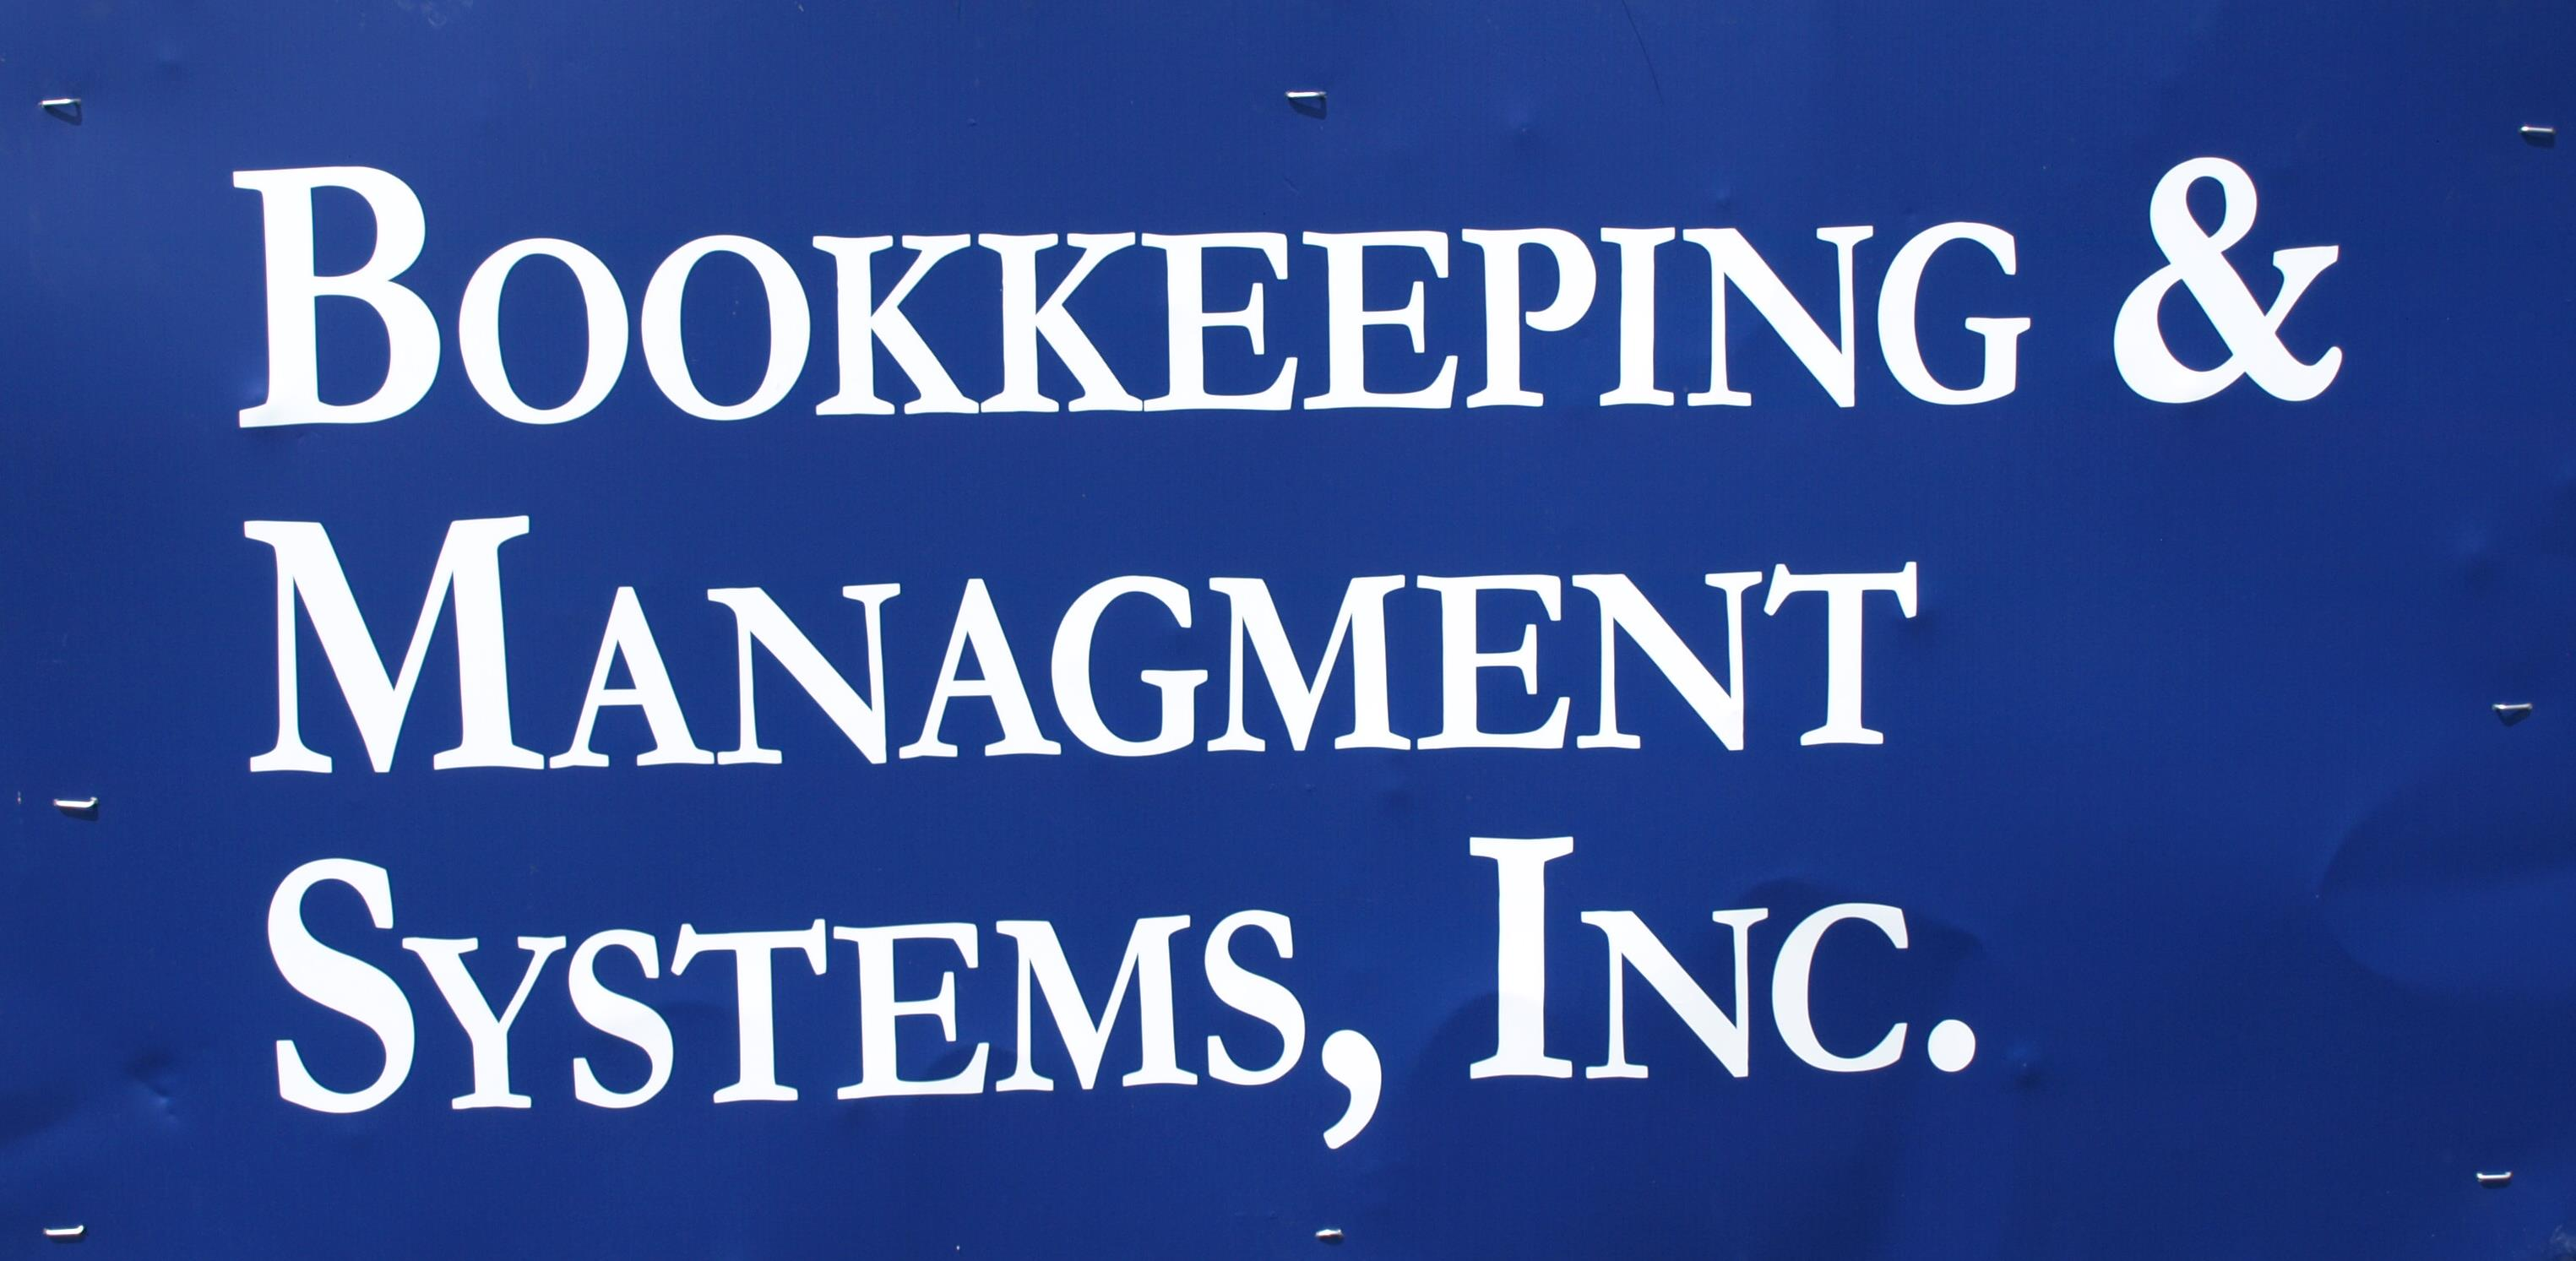 Bookkeeping & Management Systems Inc.